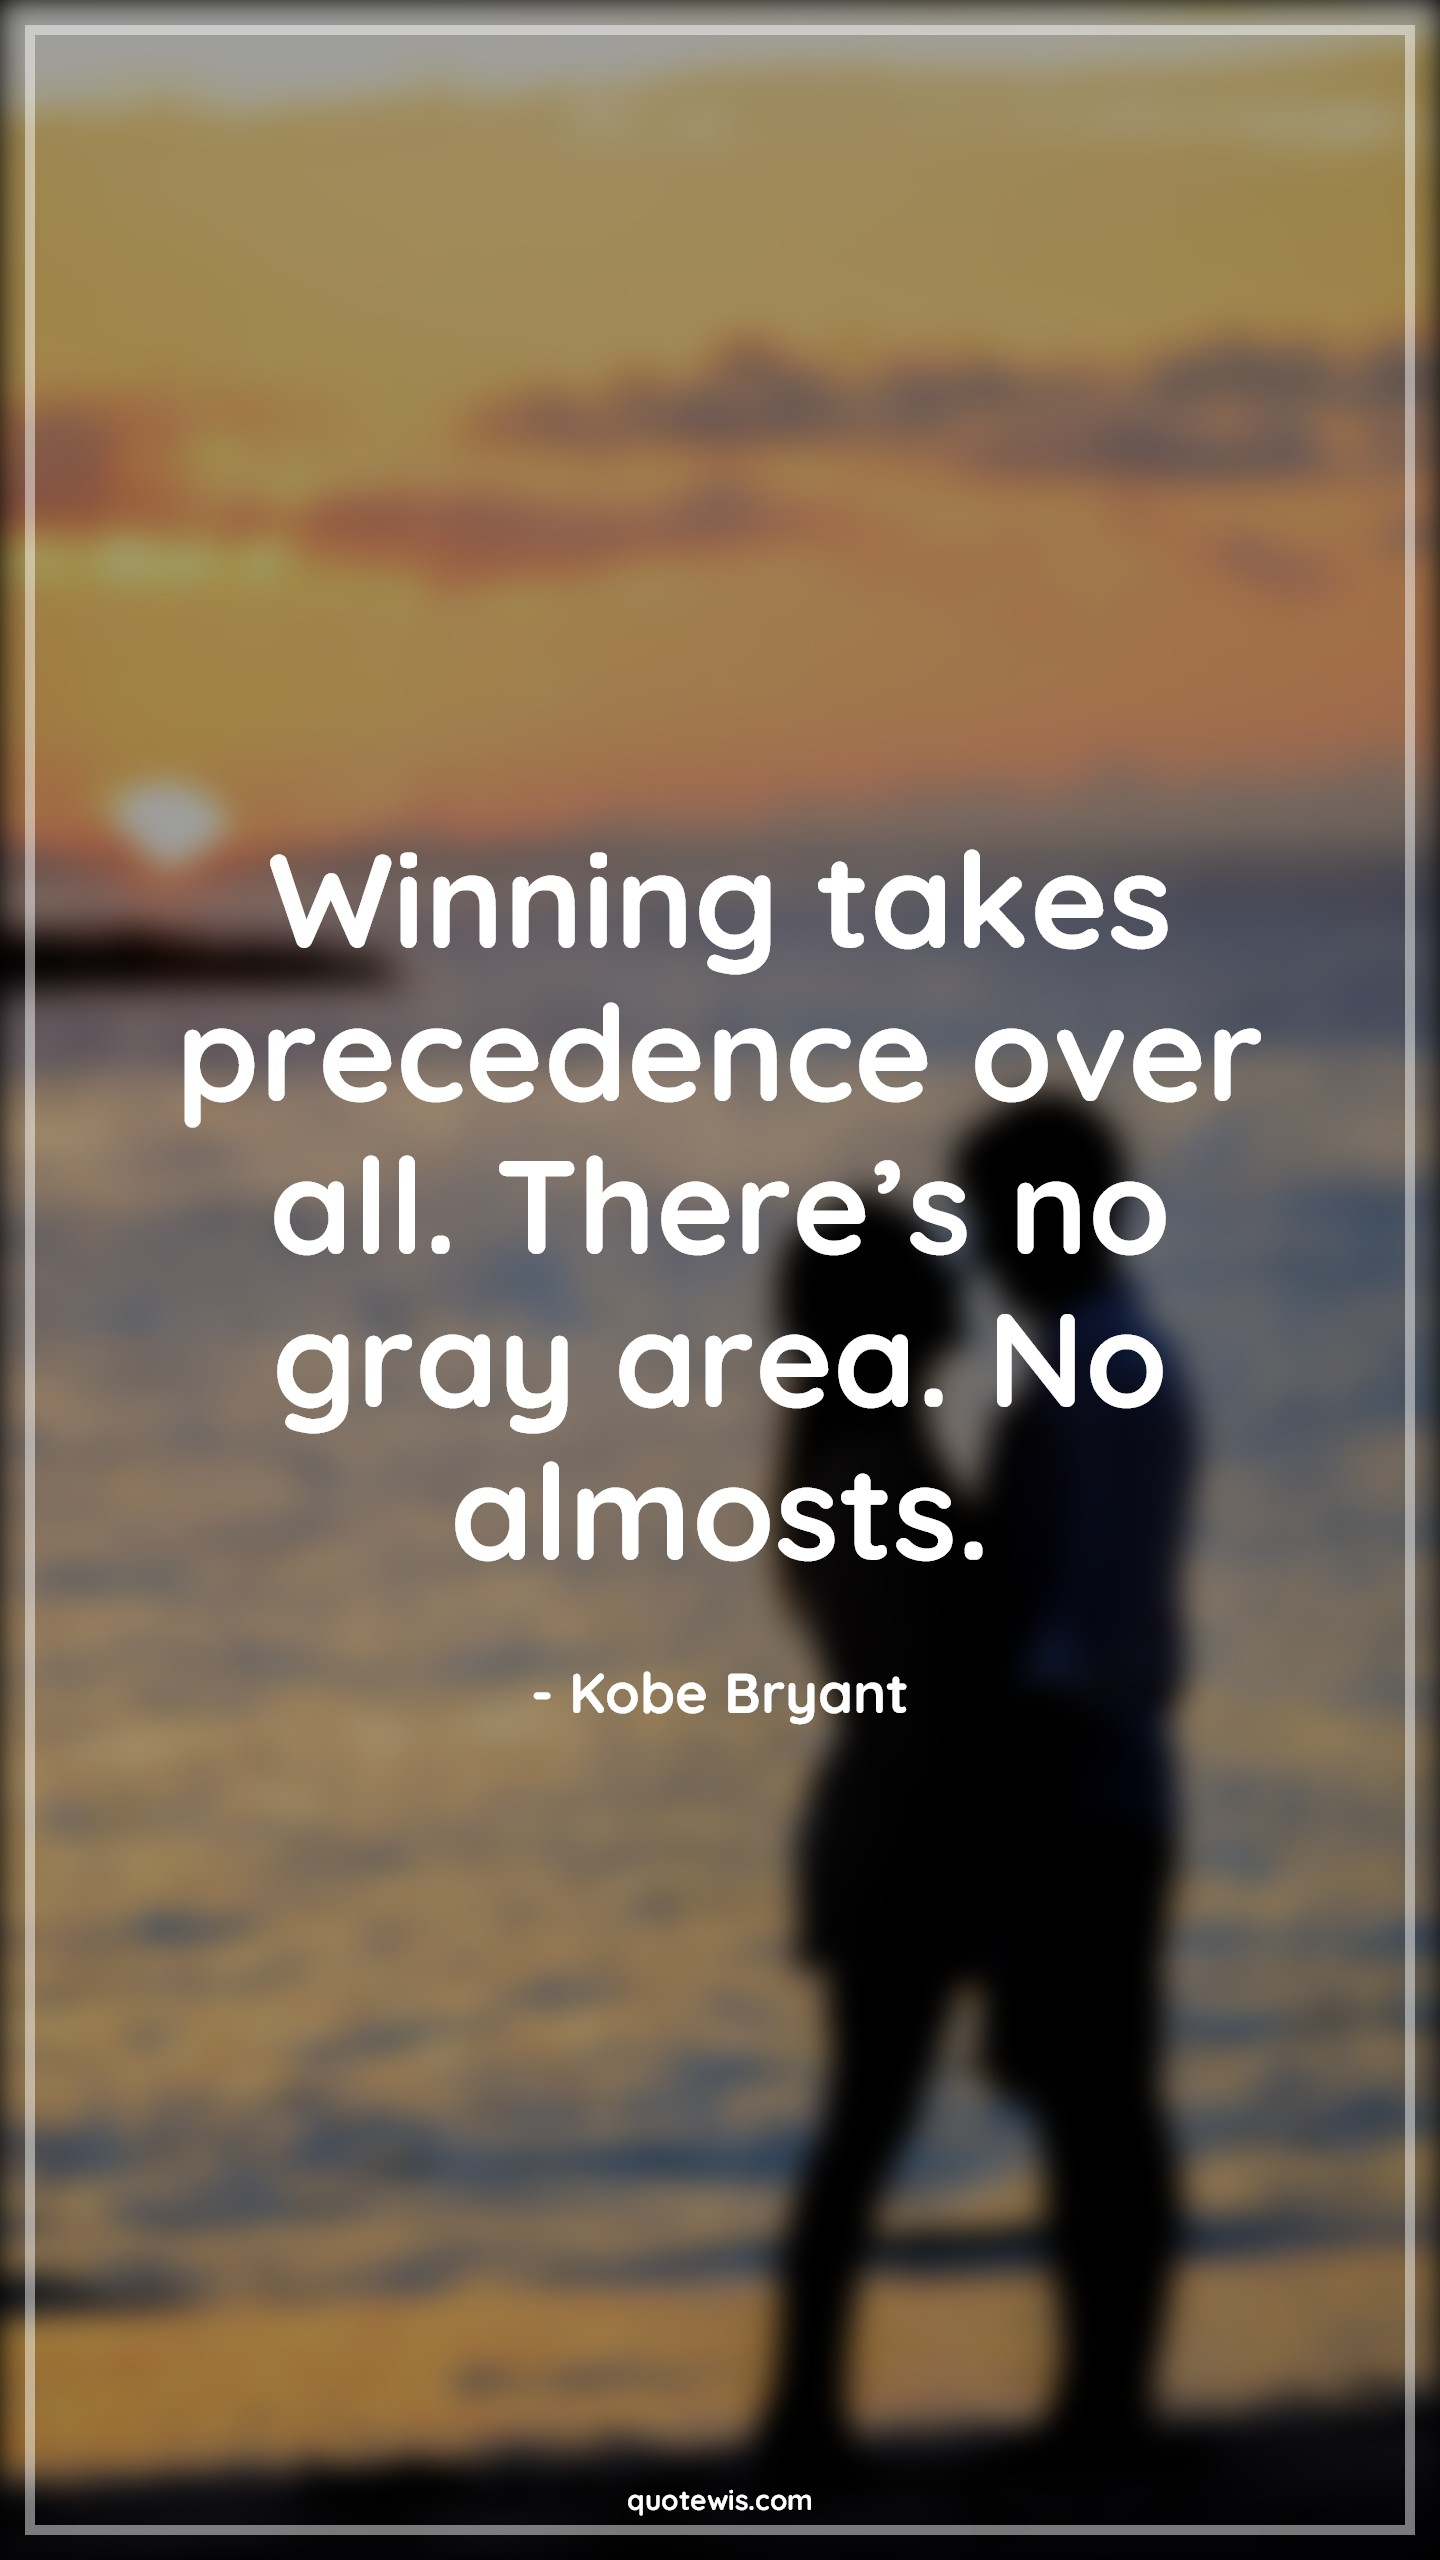 Winning takes precedence over all. There's no gray area. No almosts.